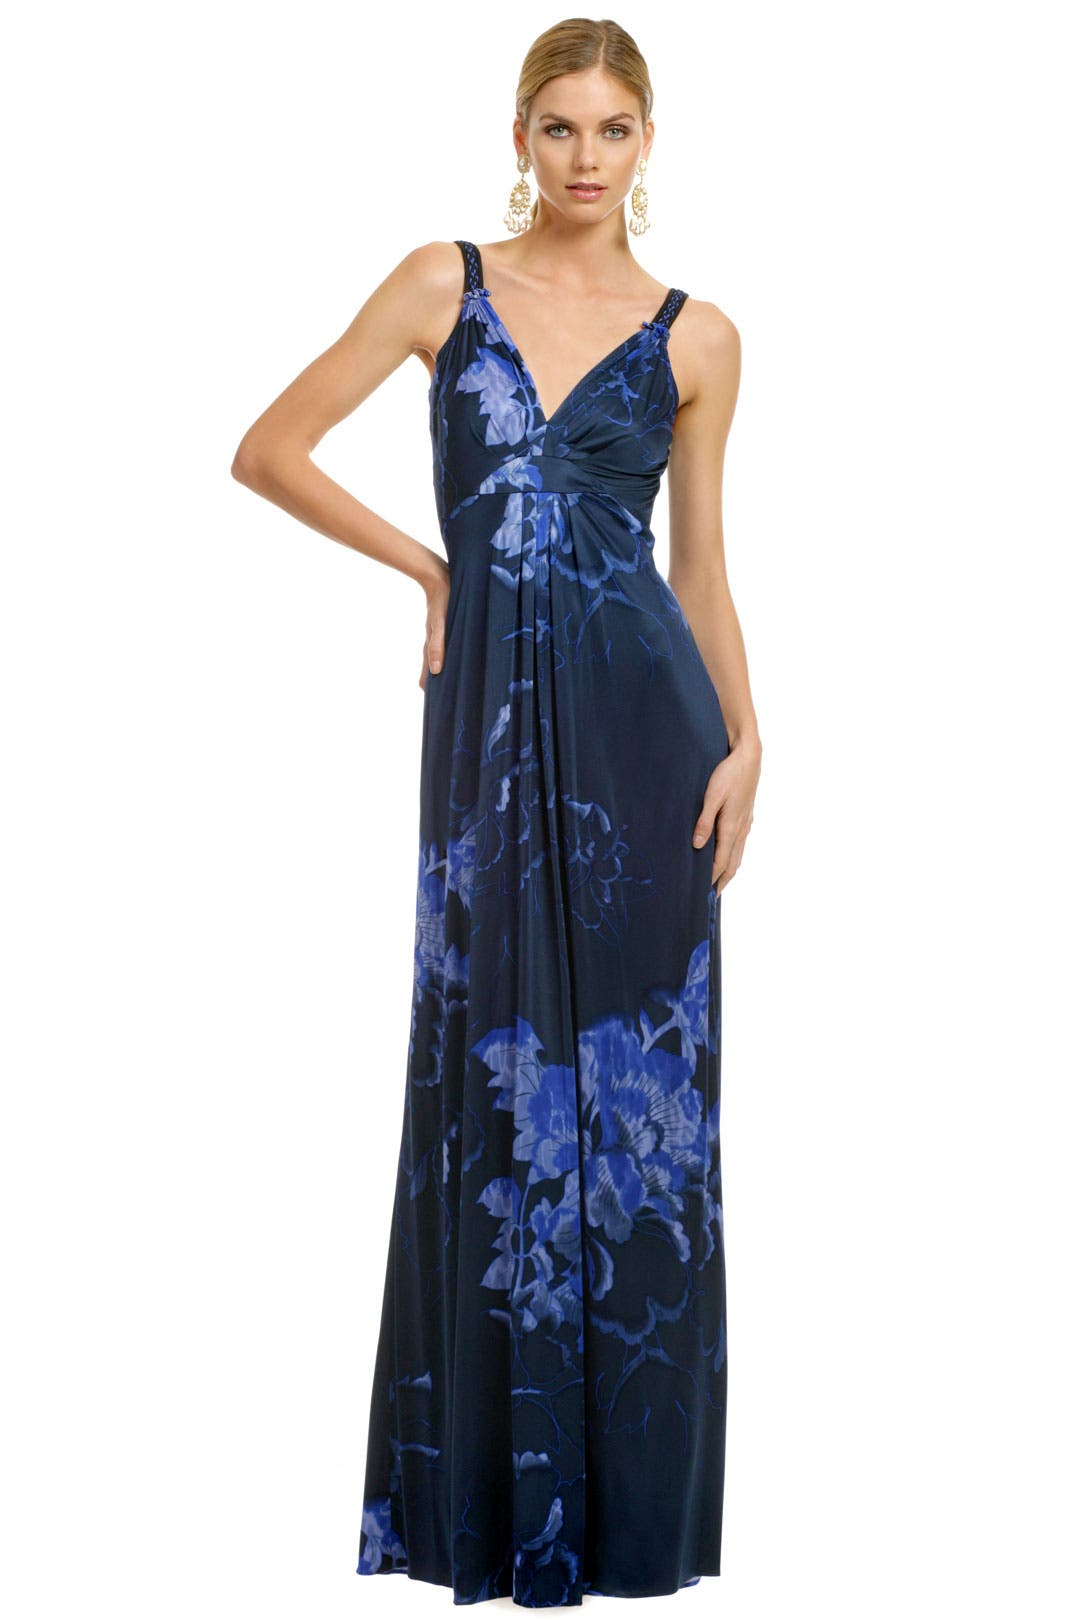 Tropical Ocean Storm Maxi by Elie Tahari